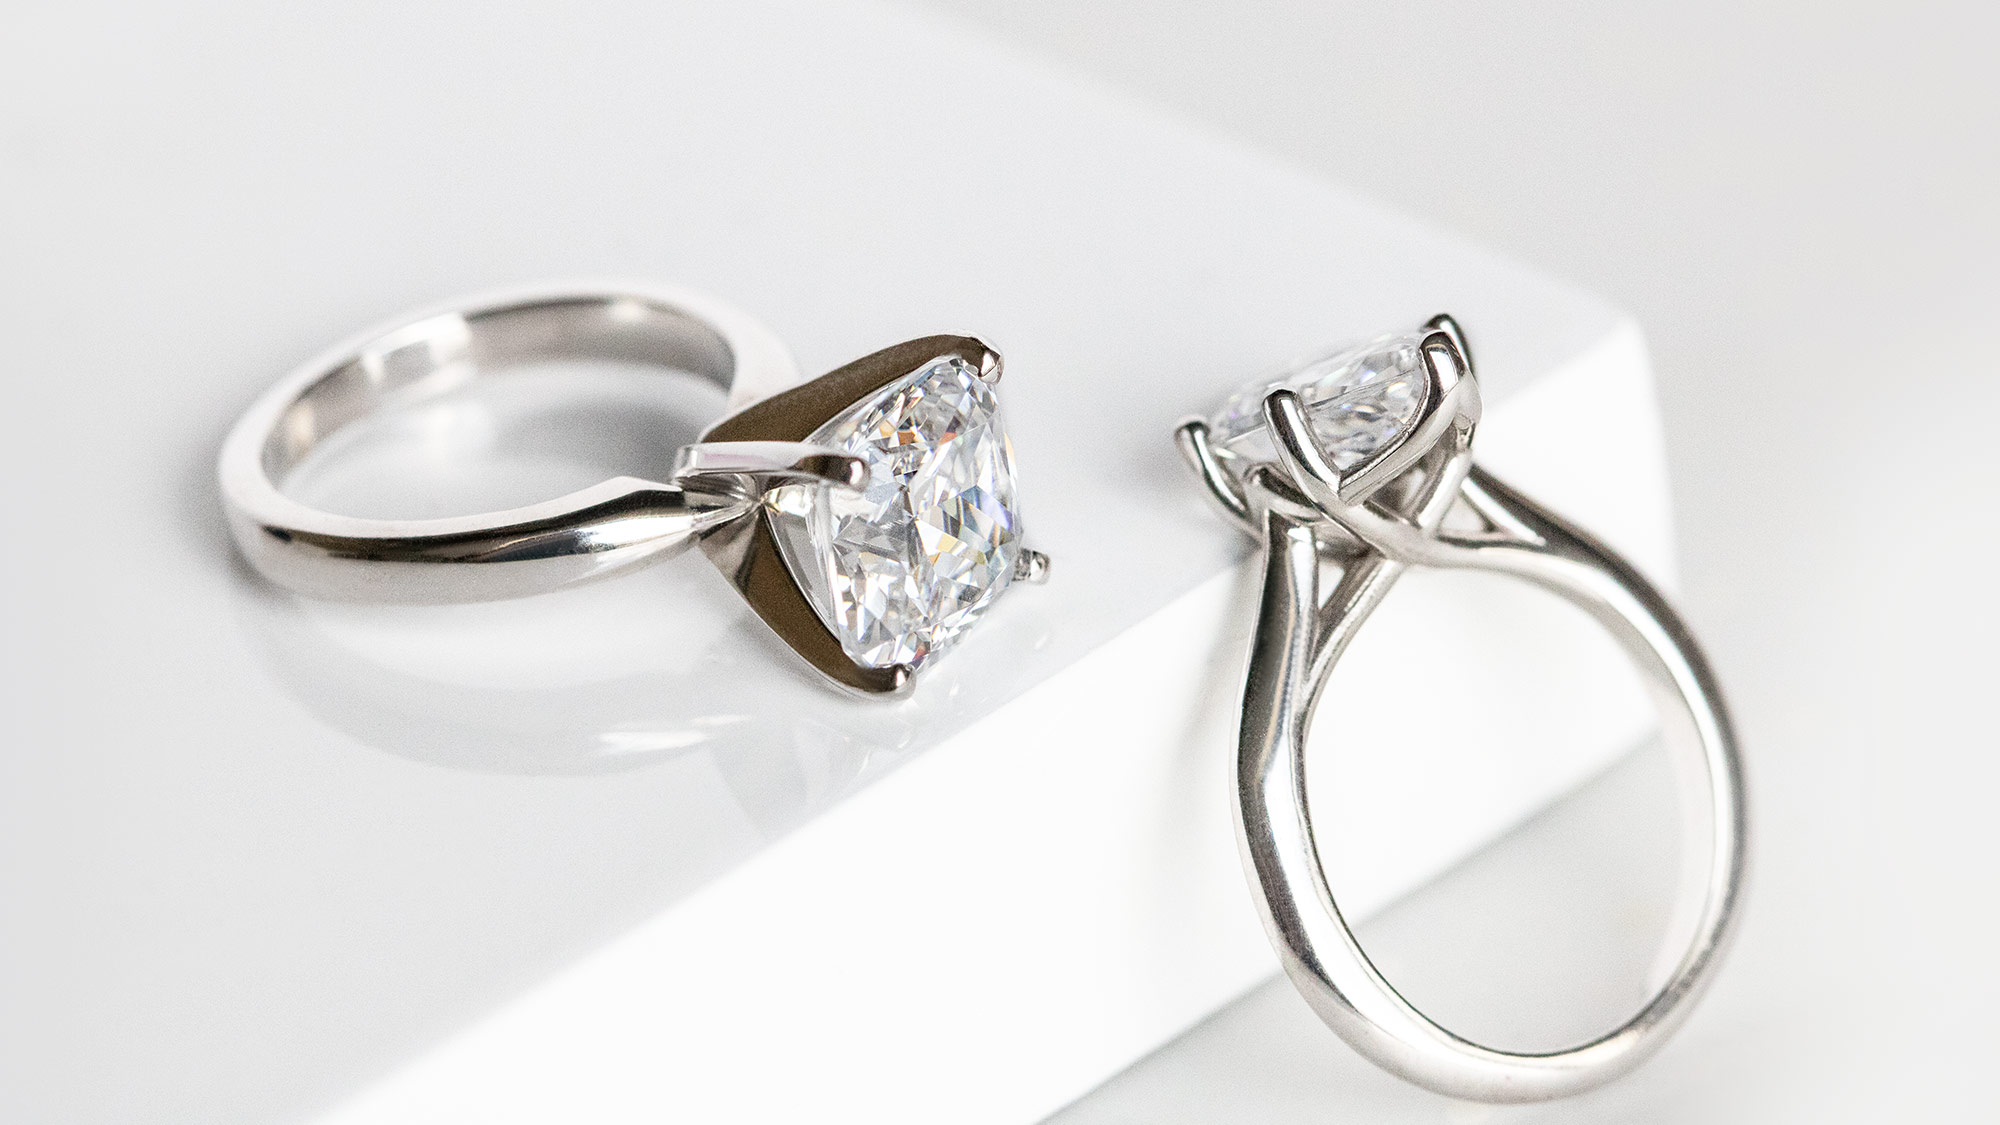 Two white gold solitaire Diamond Nexus engagement rings.